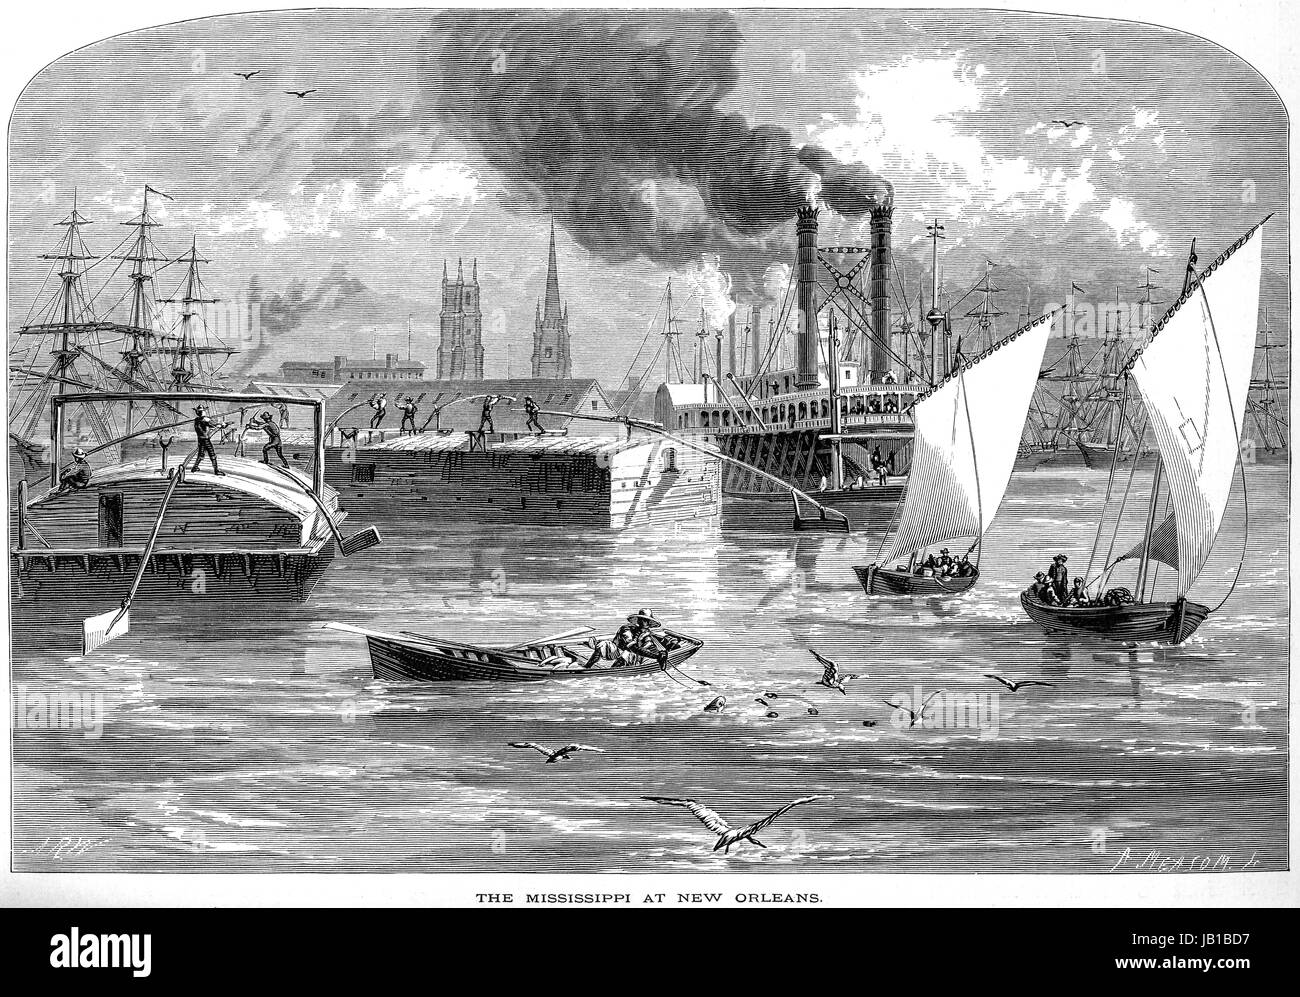 An engraving of The Mississippi at New Orleans scanned at high resolution from a book printed in 1872.  Believed Stock Photo